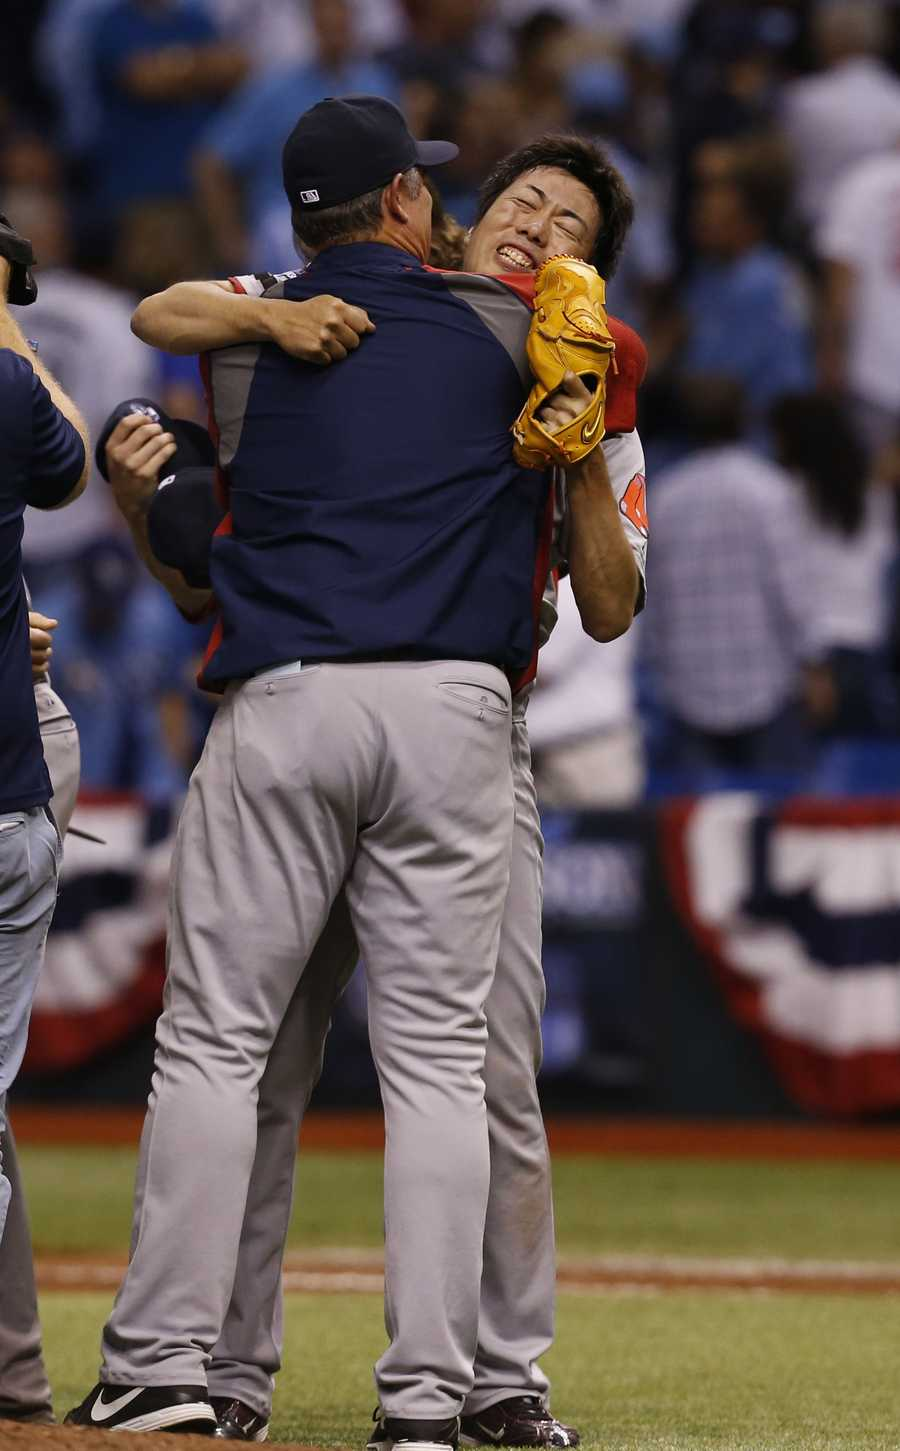 Boston Red Sox relief pitcher Koji Uehara is hugged by manager John Farrell.